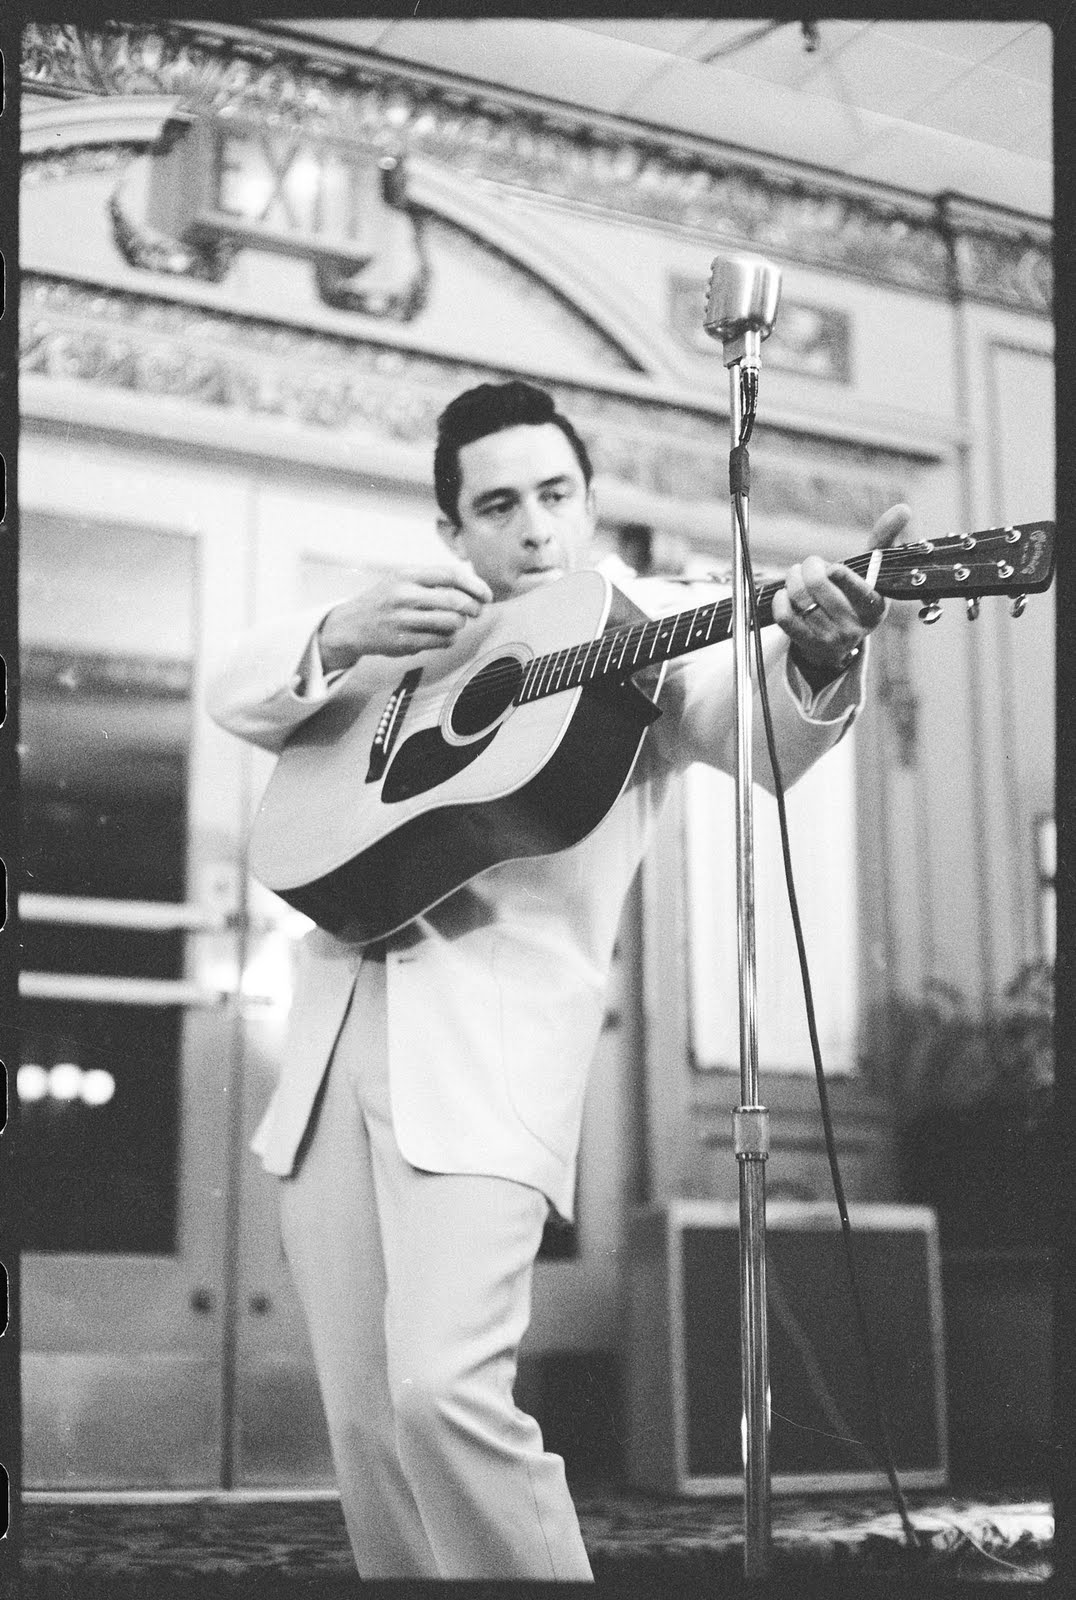 Yesterday Marked The Release Of Last Volume Johnny Cashs American Recordings Series VI While Fourth Is Not Likely To Be Surpassed